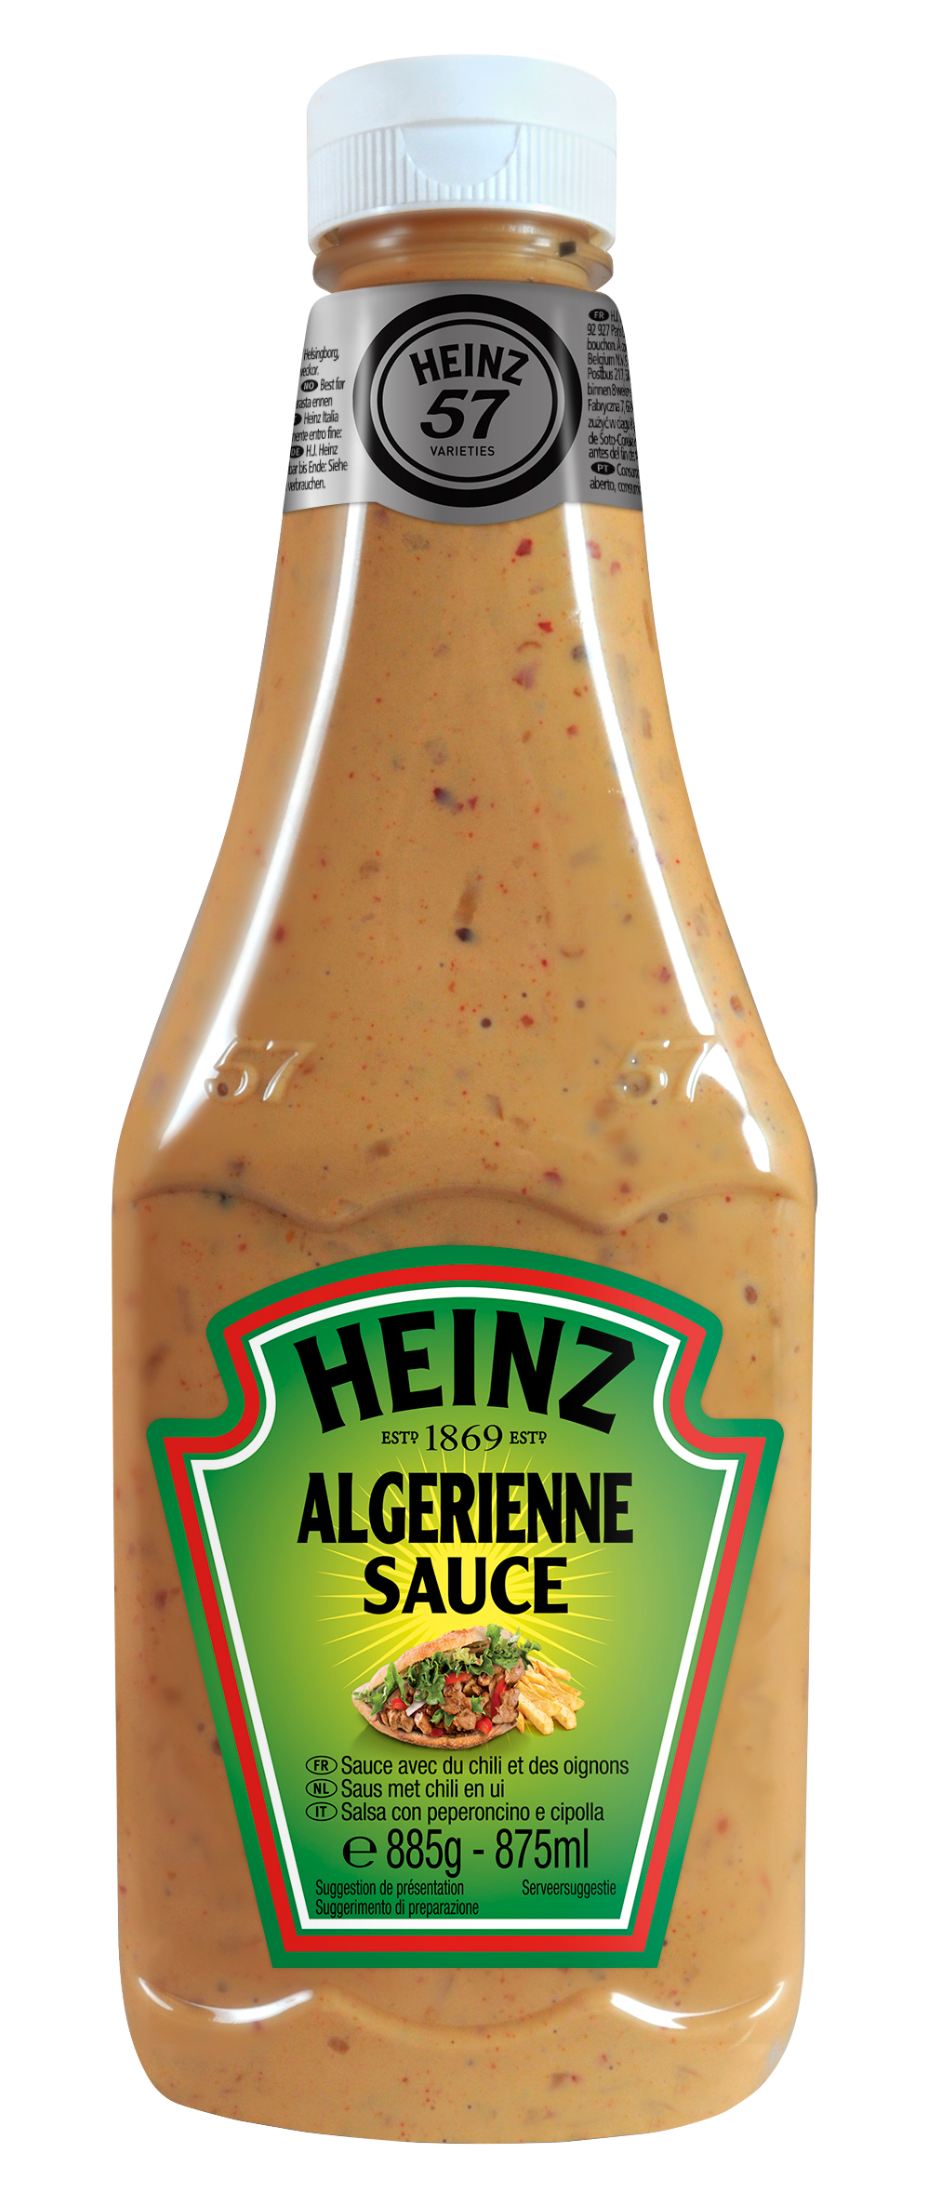 Heinz Algerienne Sauce 875ml Up Right image